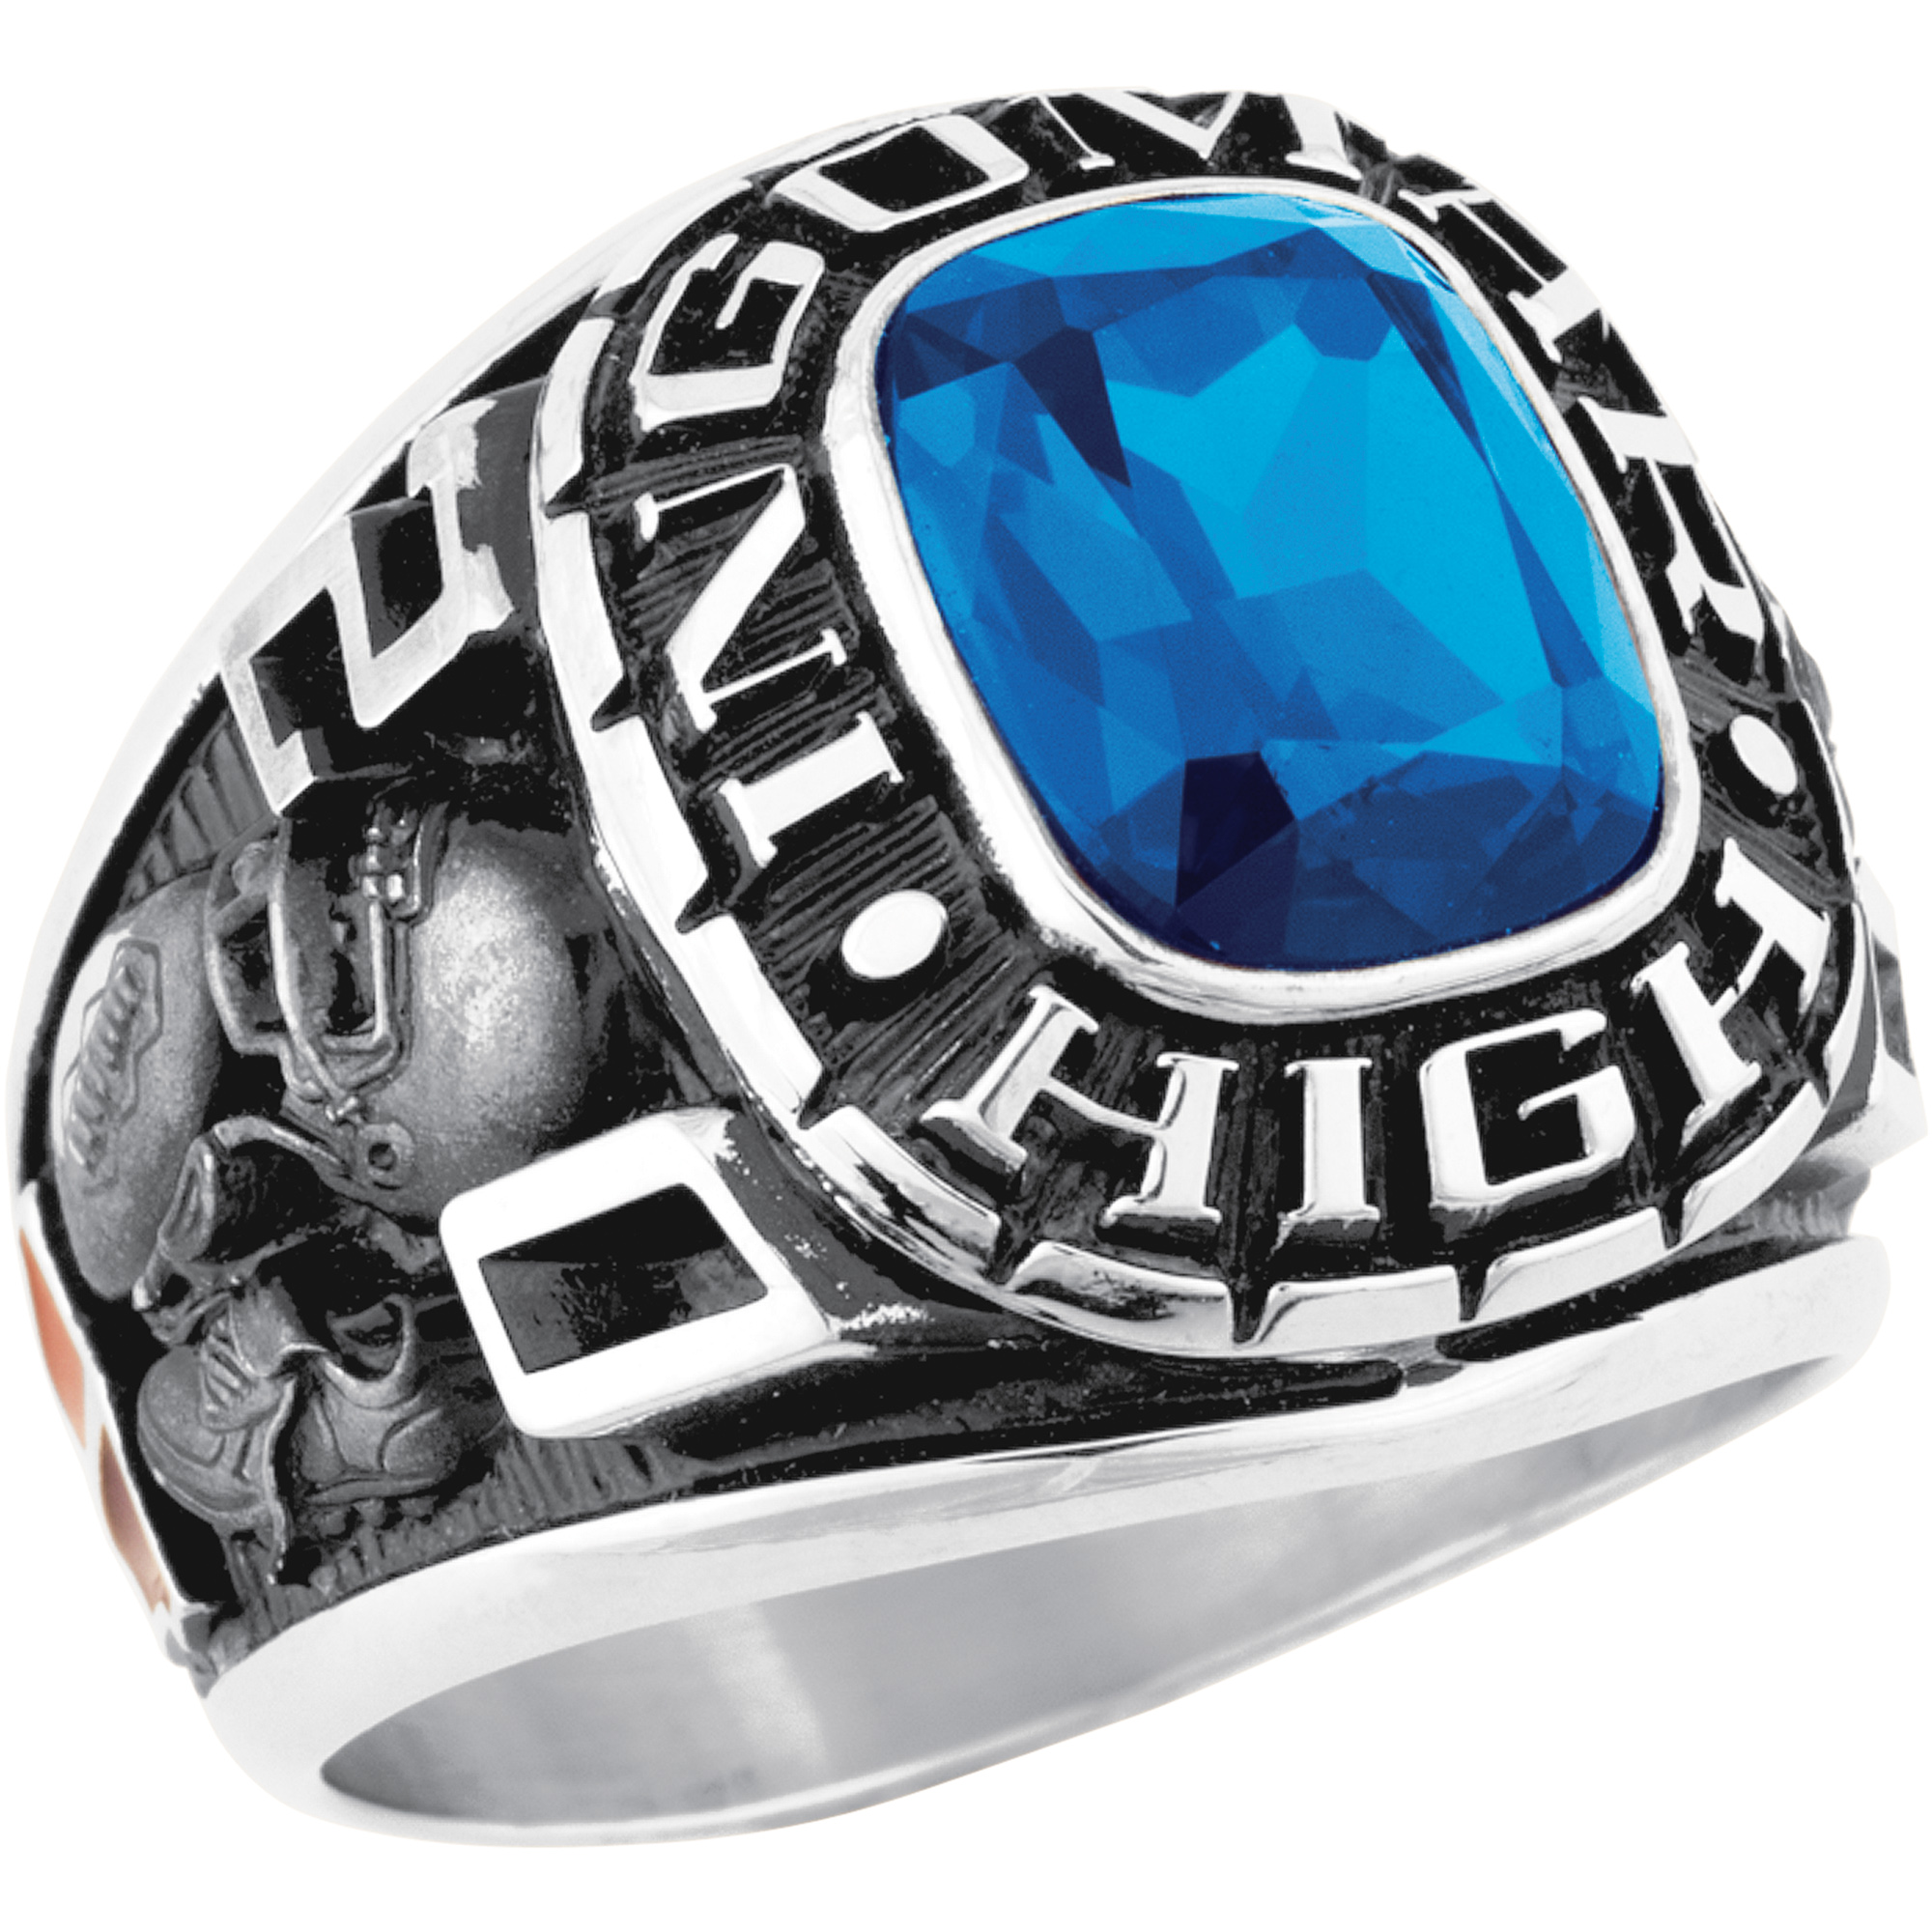 state nrprings rings ring collection softball womans championship large